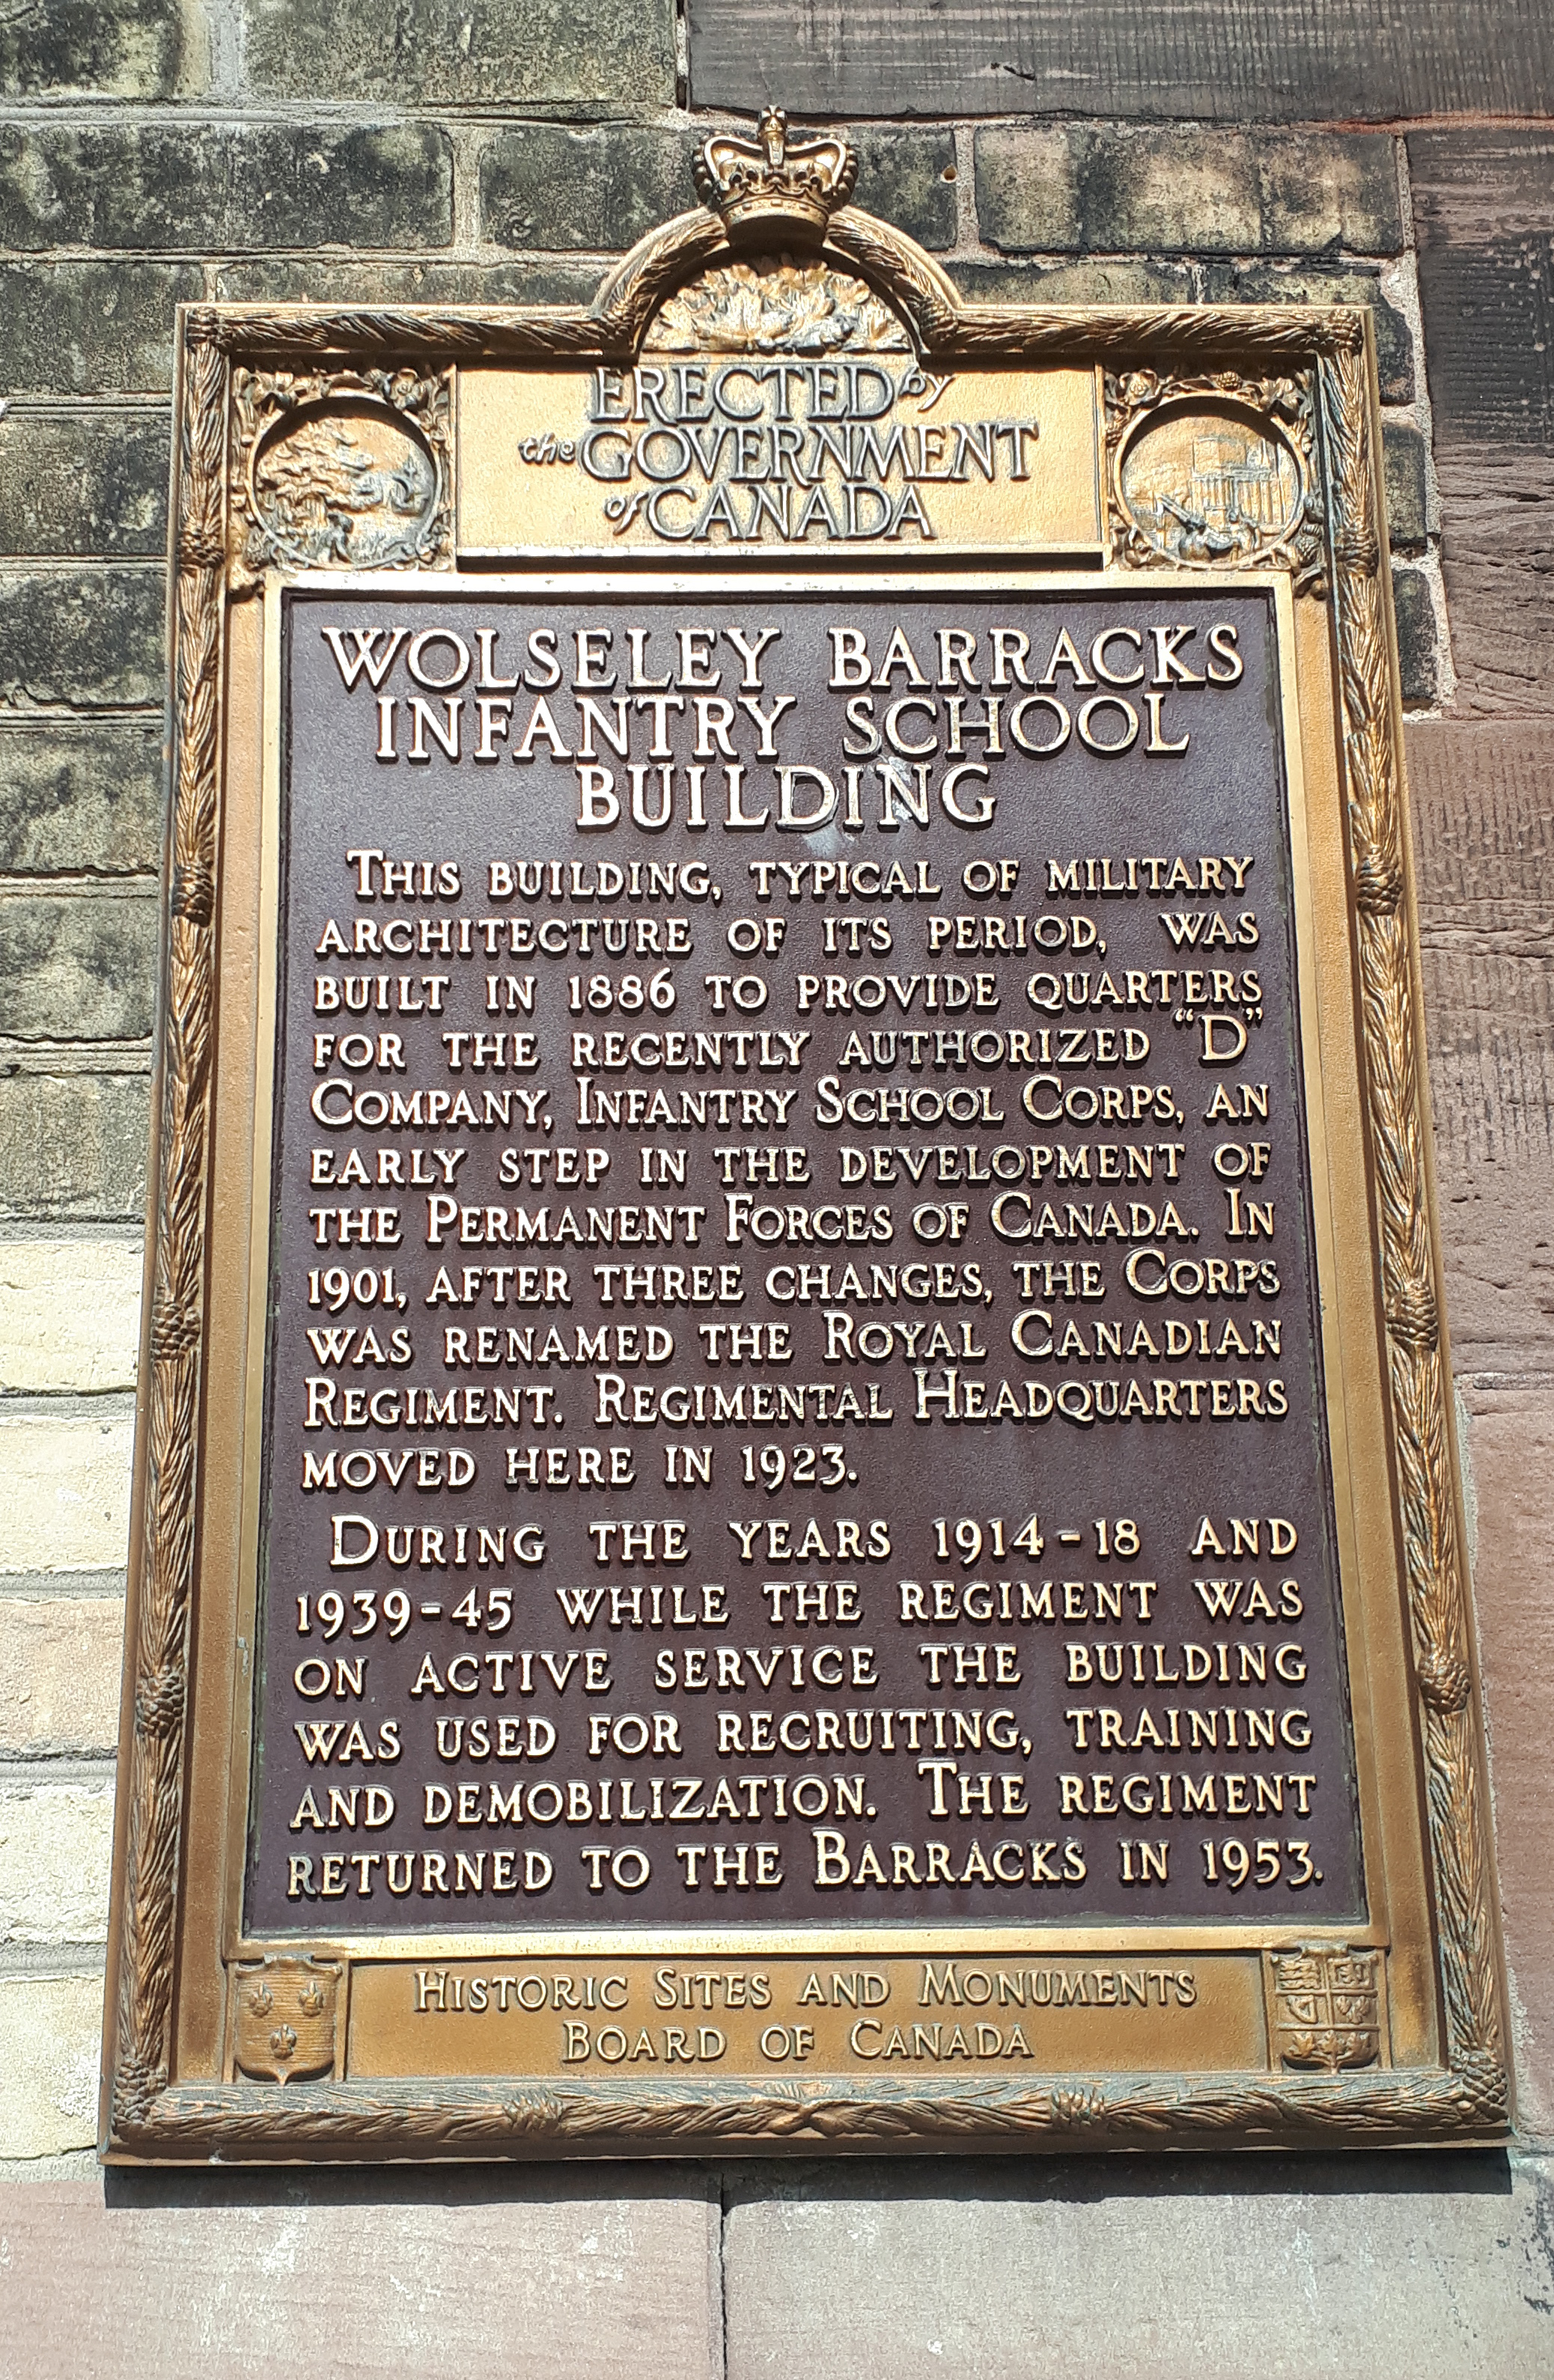 Historic Sites and Monuments Board of Canada Plaque